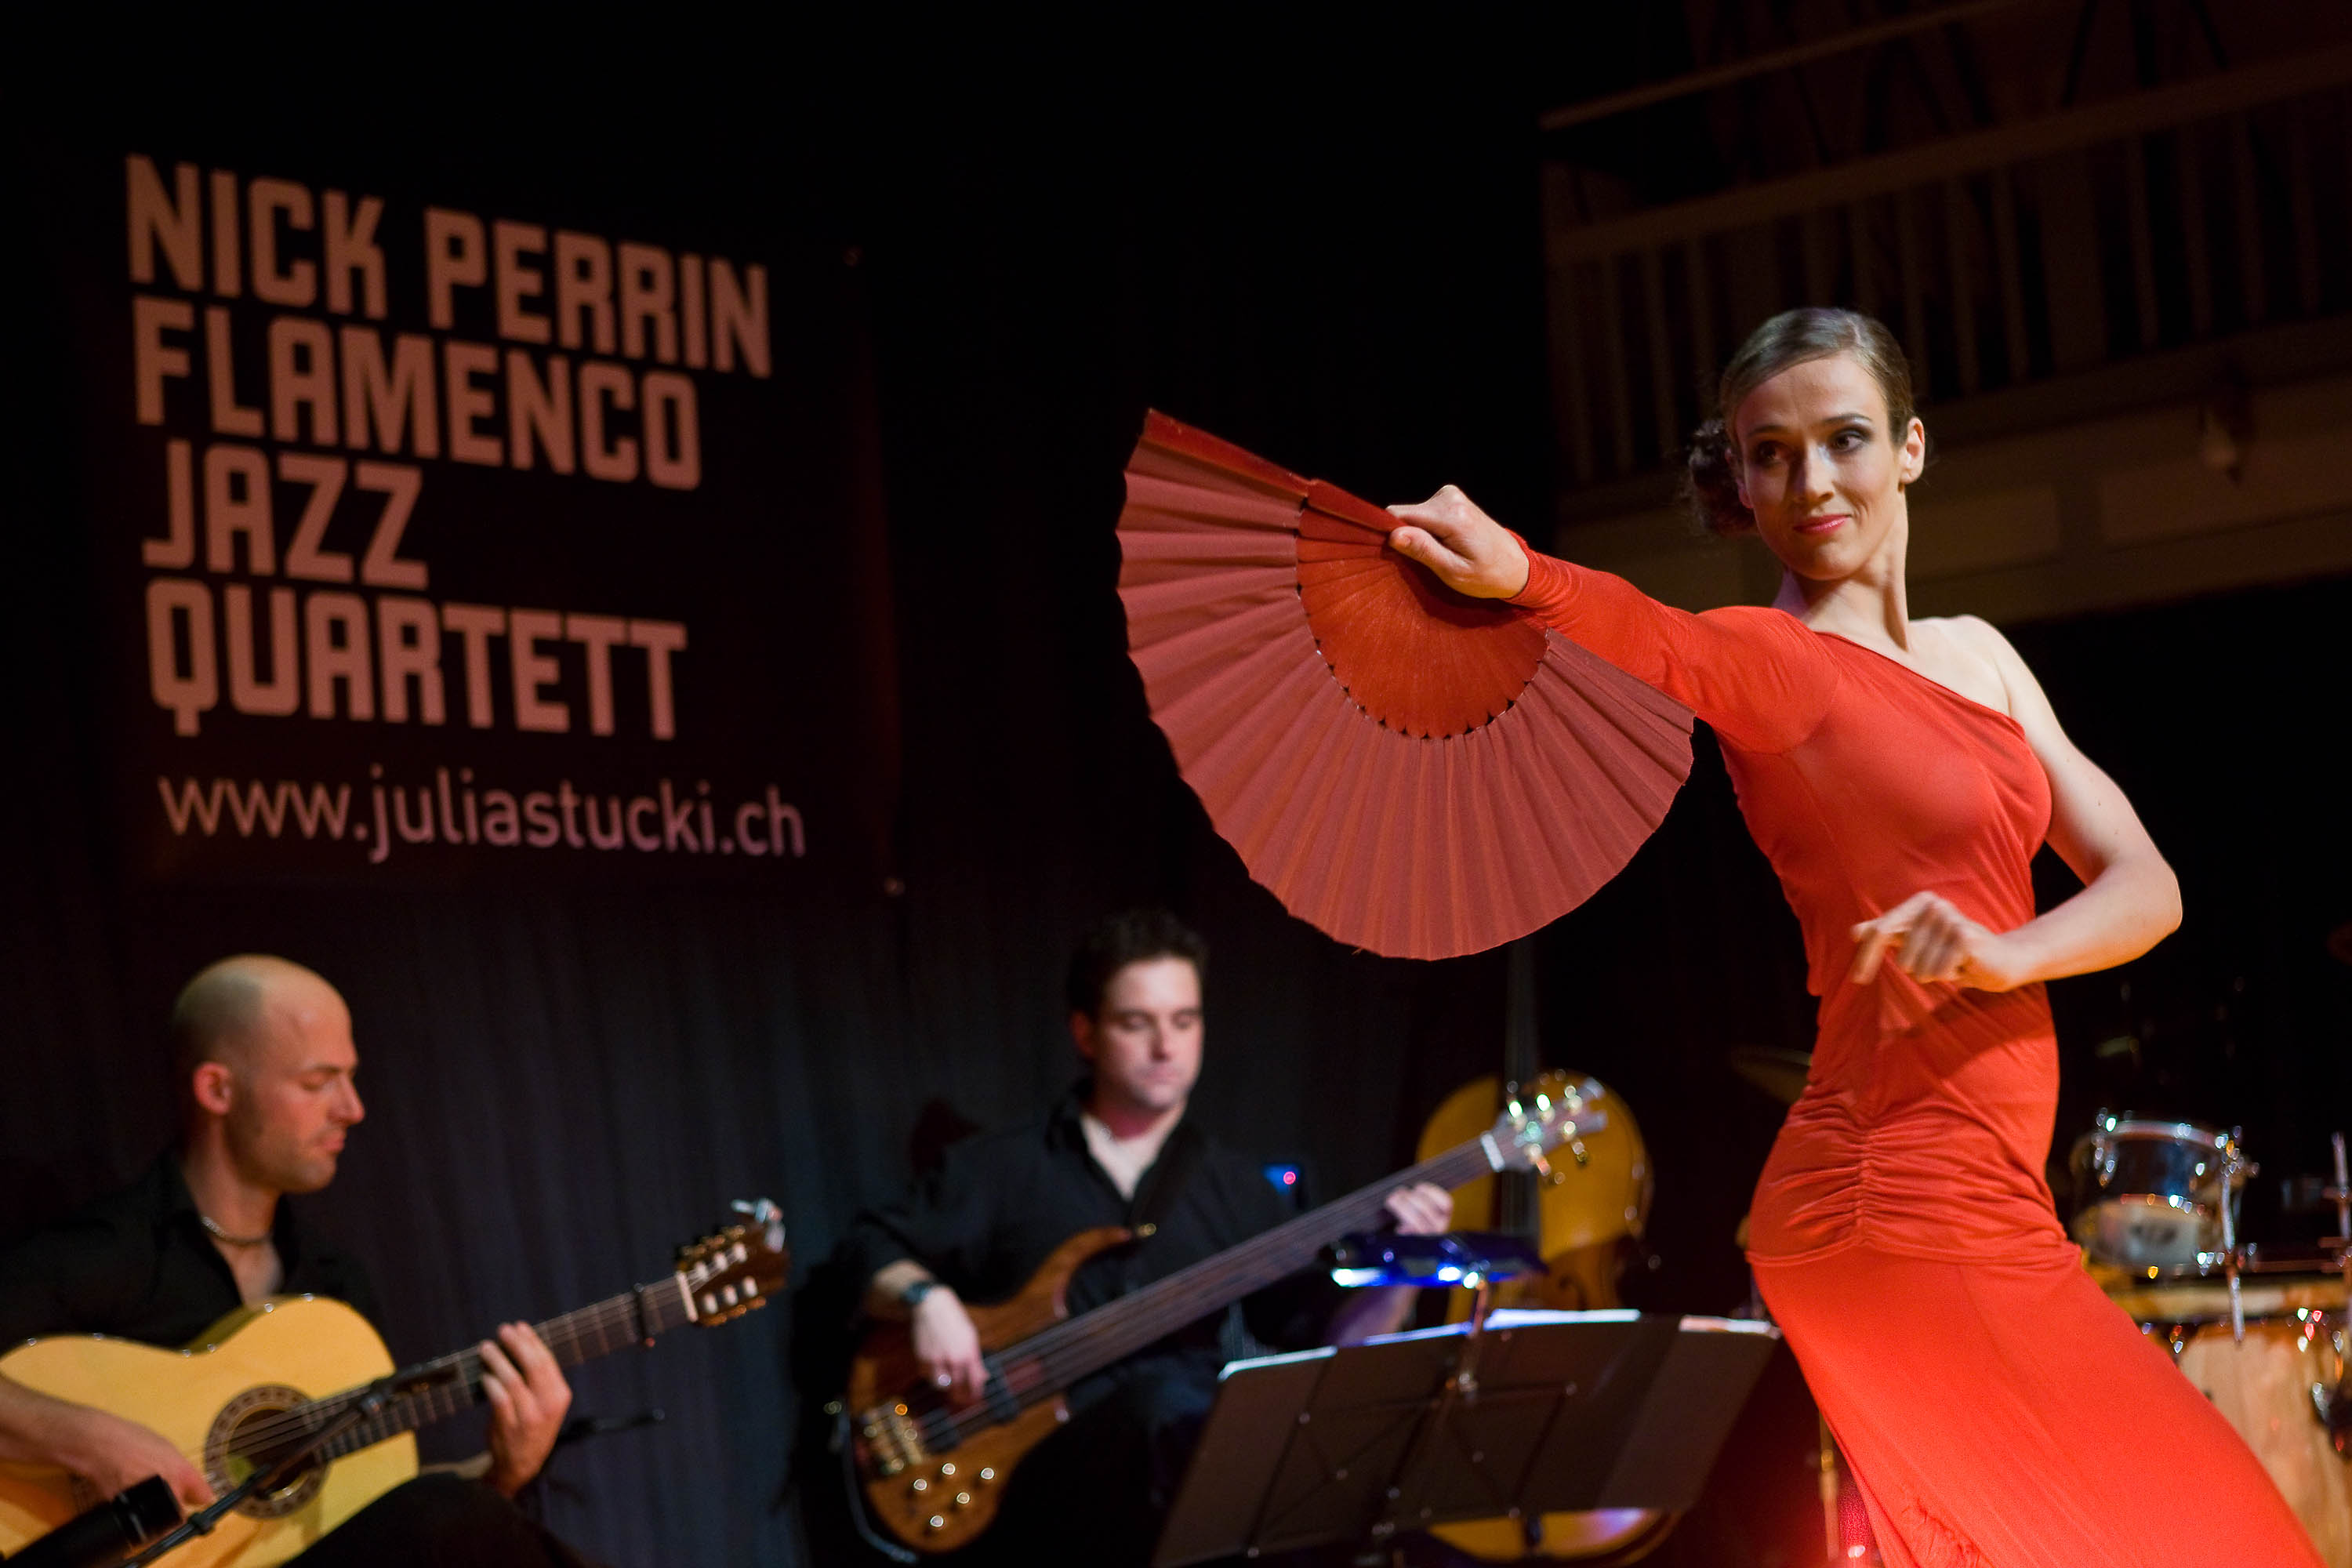 nick perrin flamenco jazz quartett